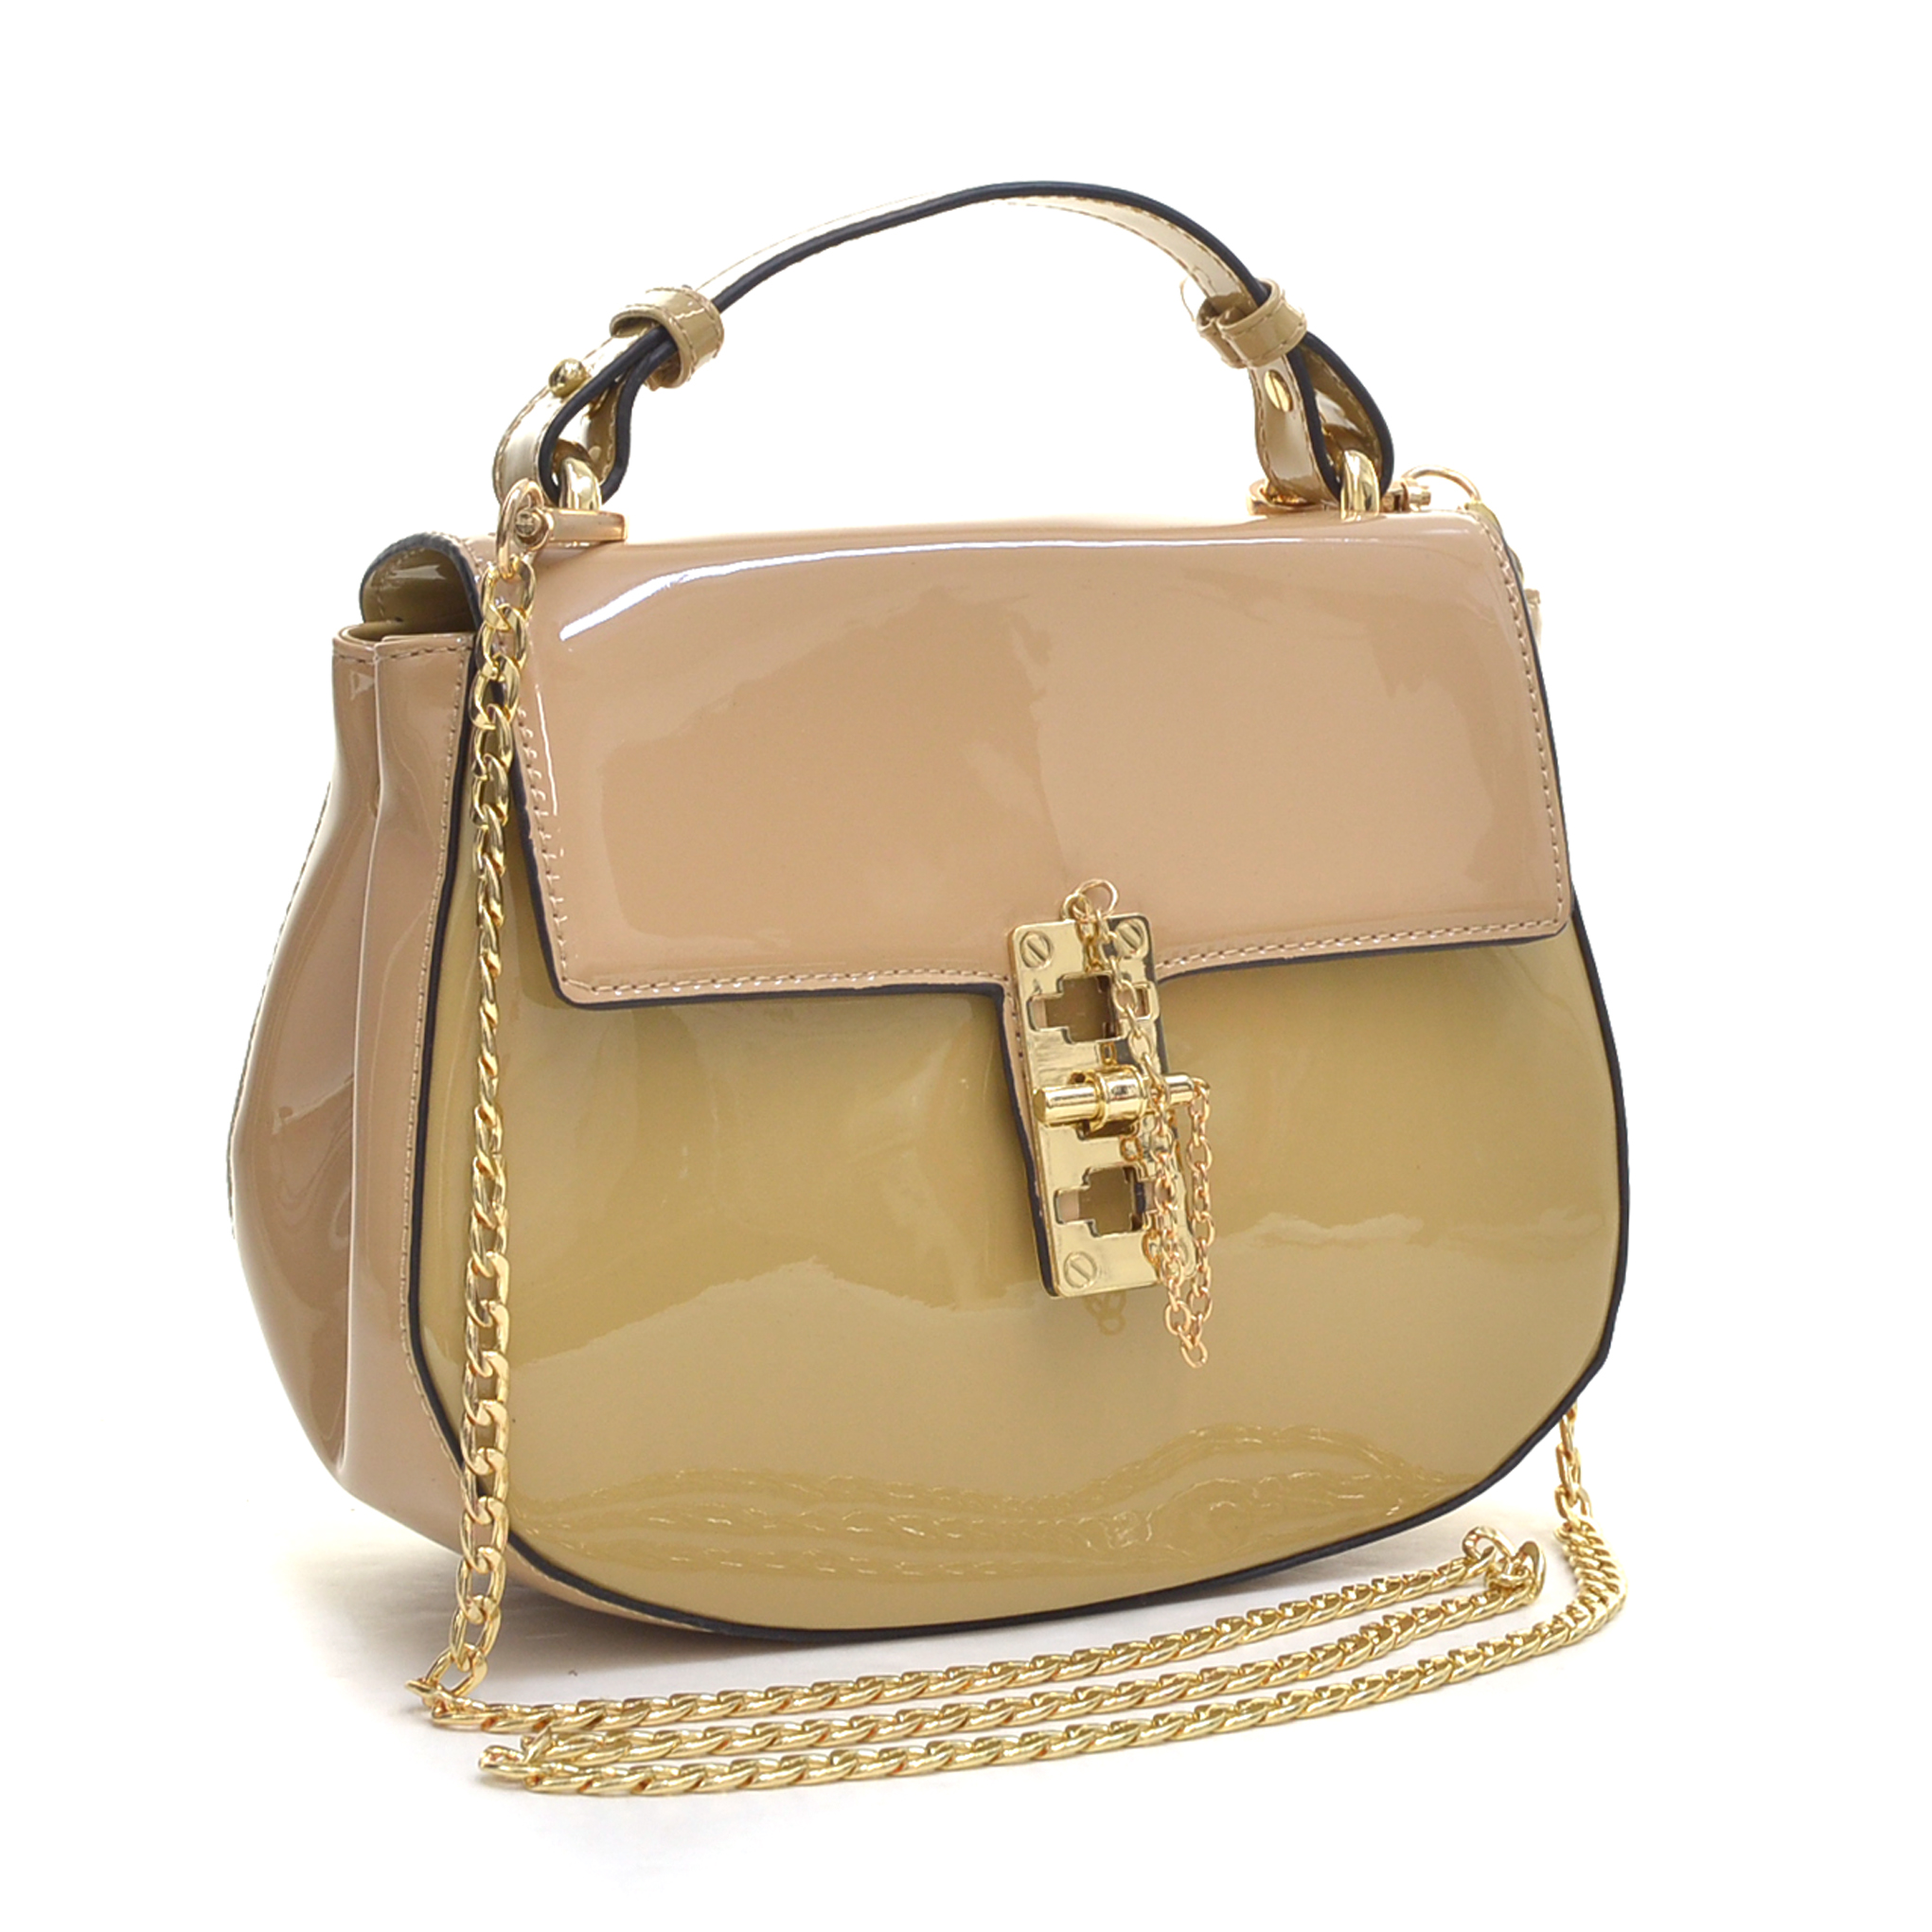 Patent Leather Crossbody Bag with Pin and Clasp-Fastening Front Flap